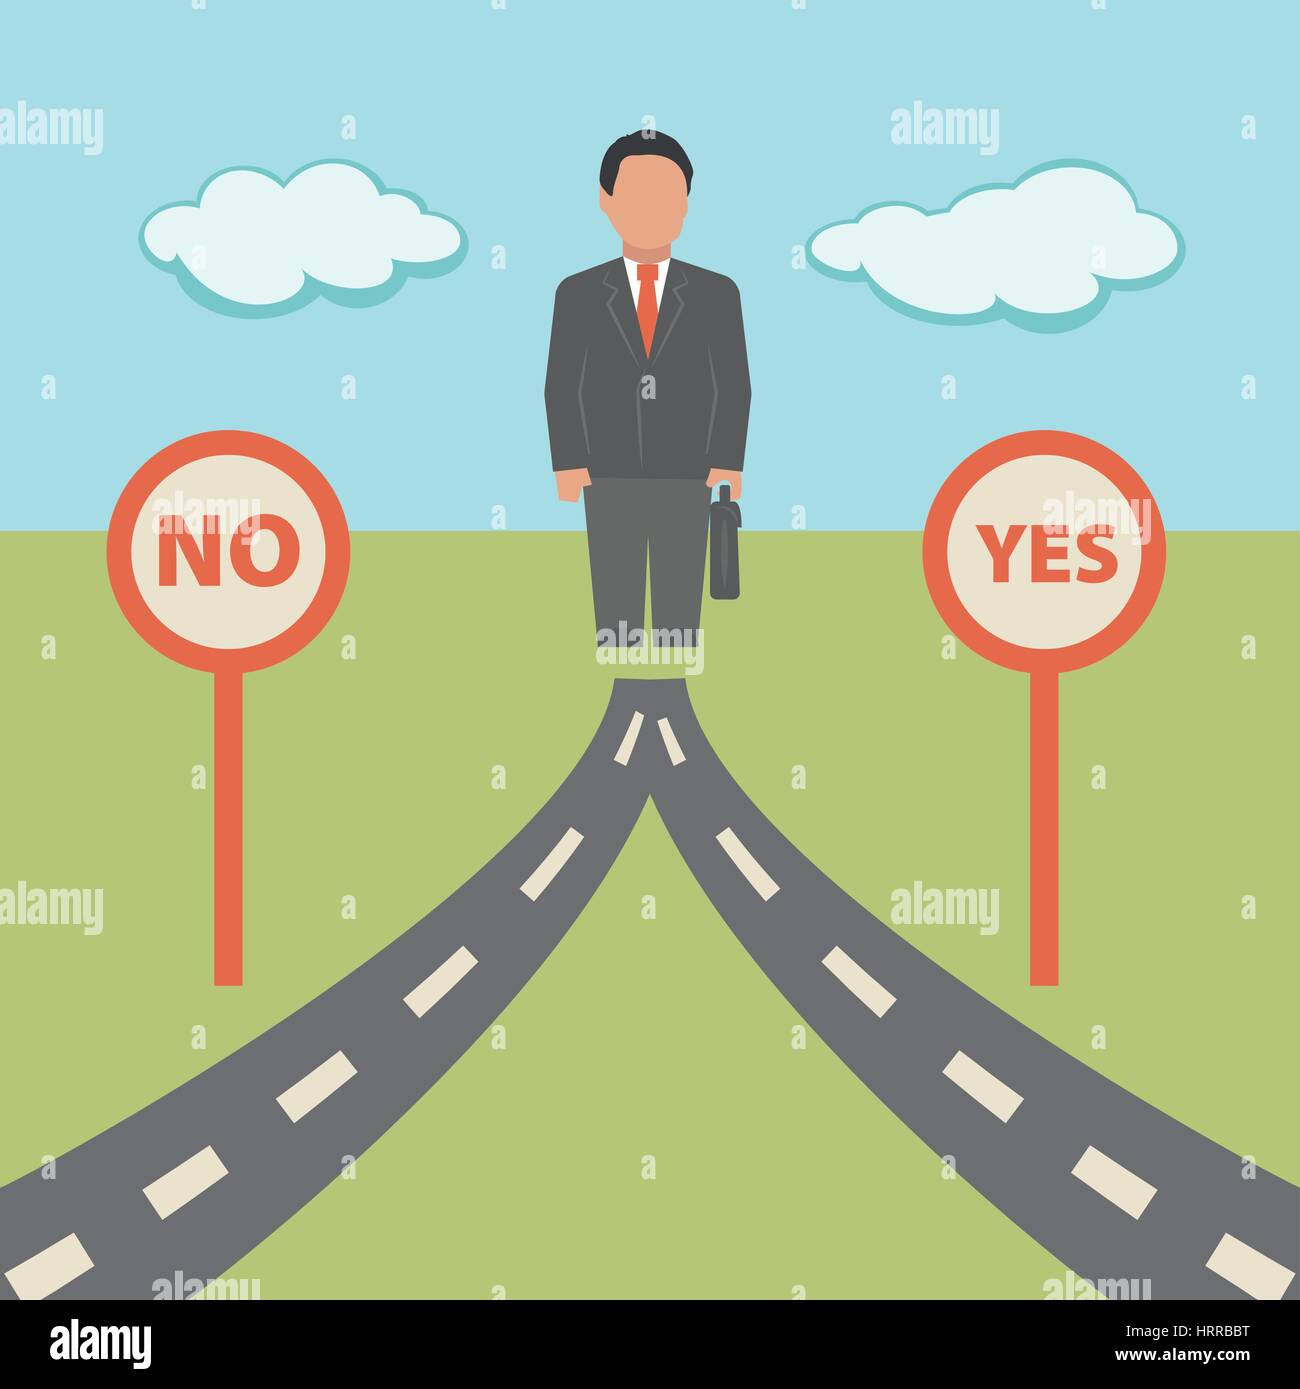 No Yes solution. Concept business illustration - Stock Image